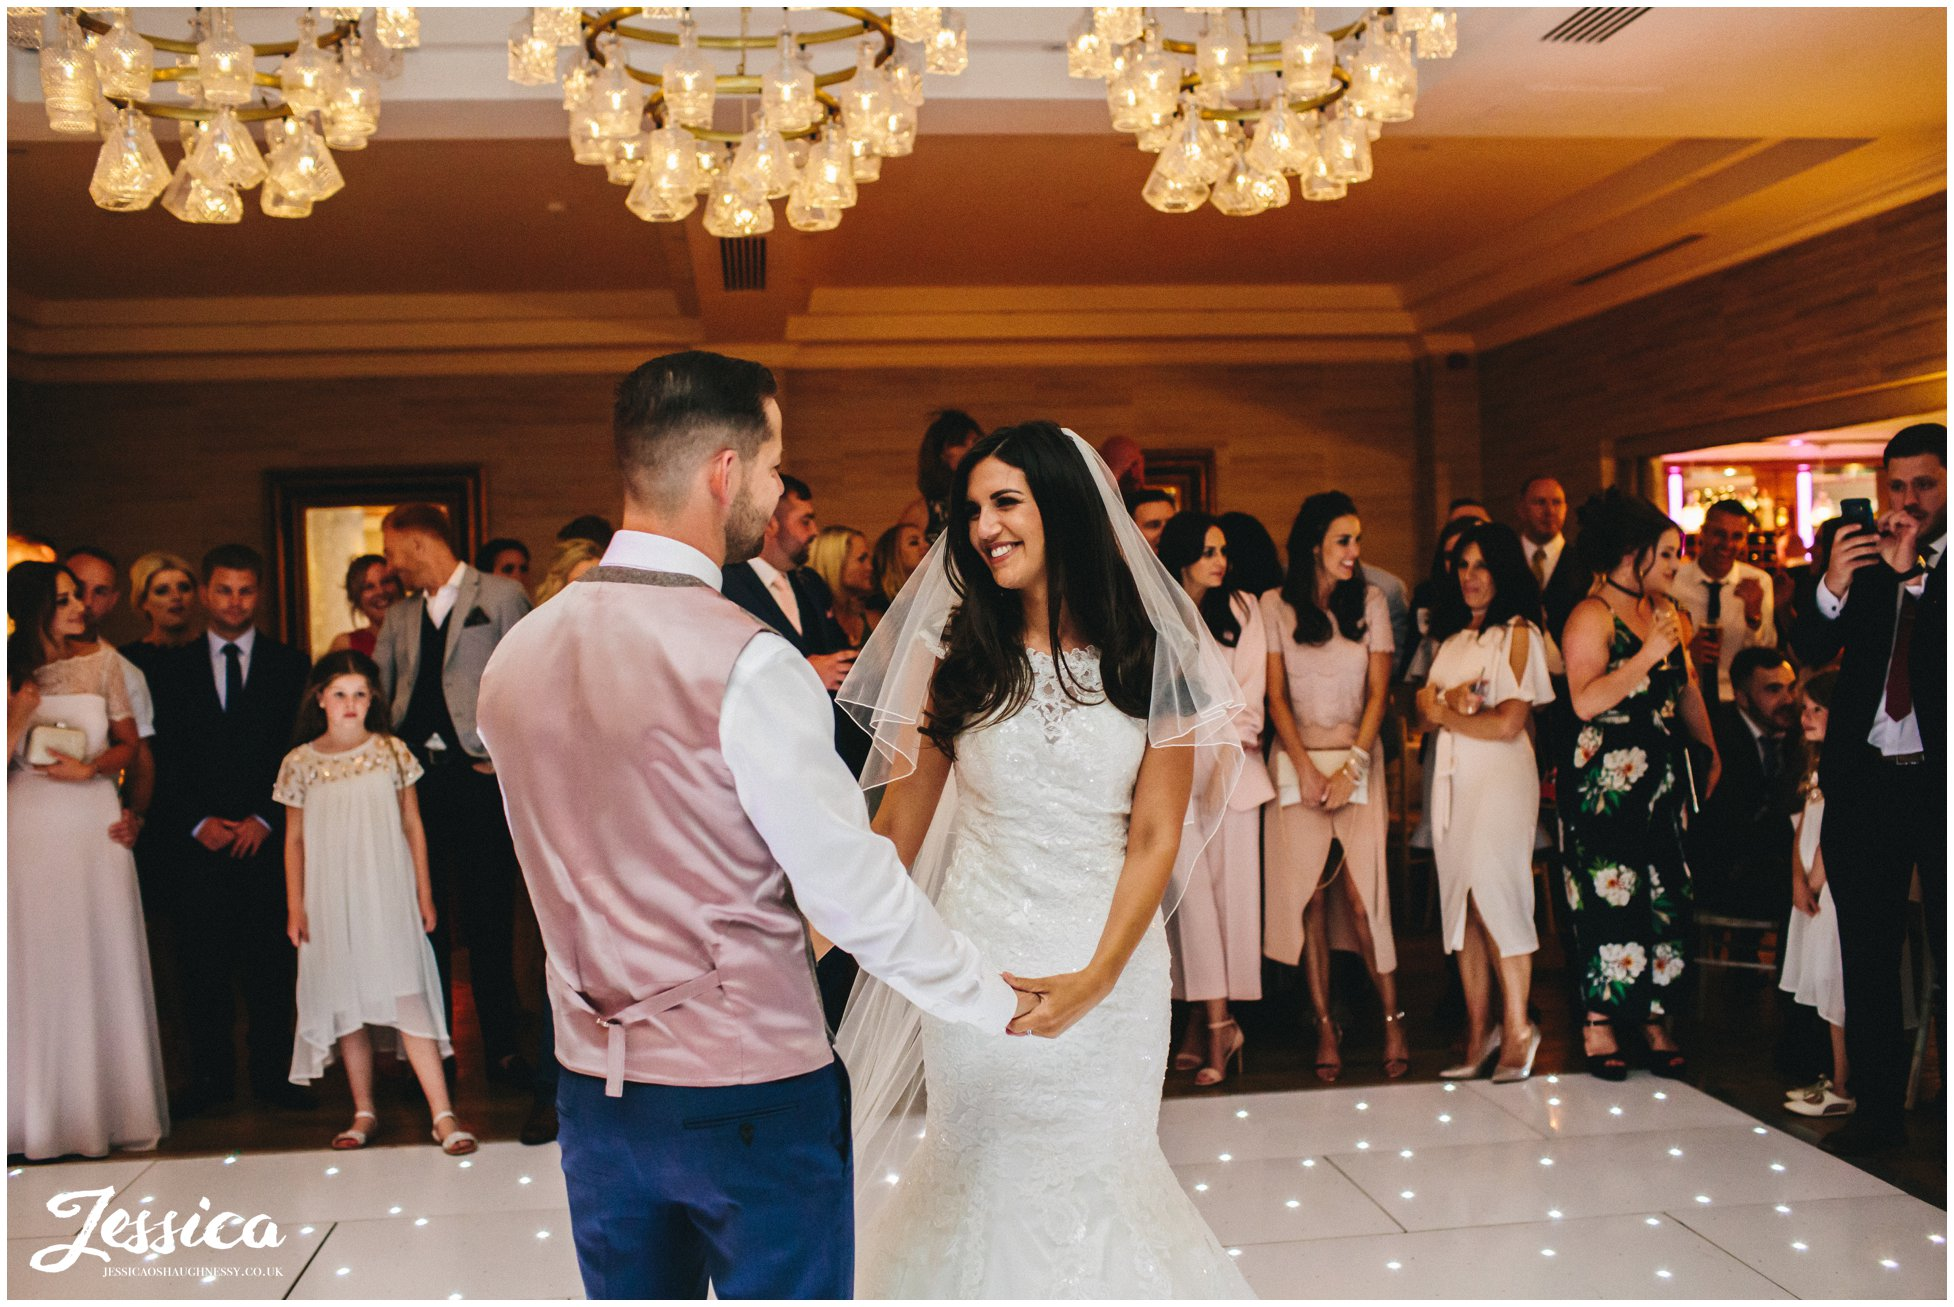 bride & groom share their first dance as husband & wife